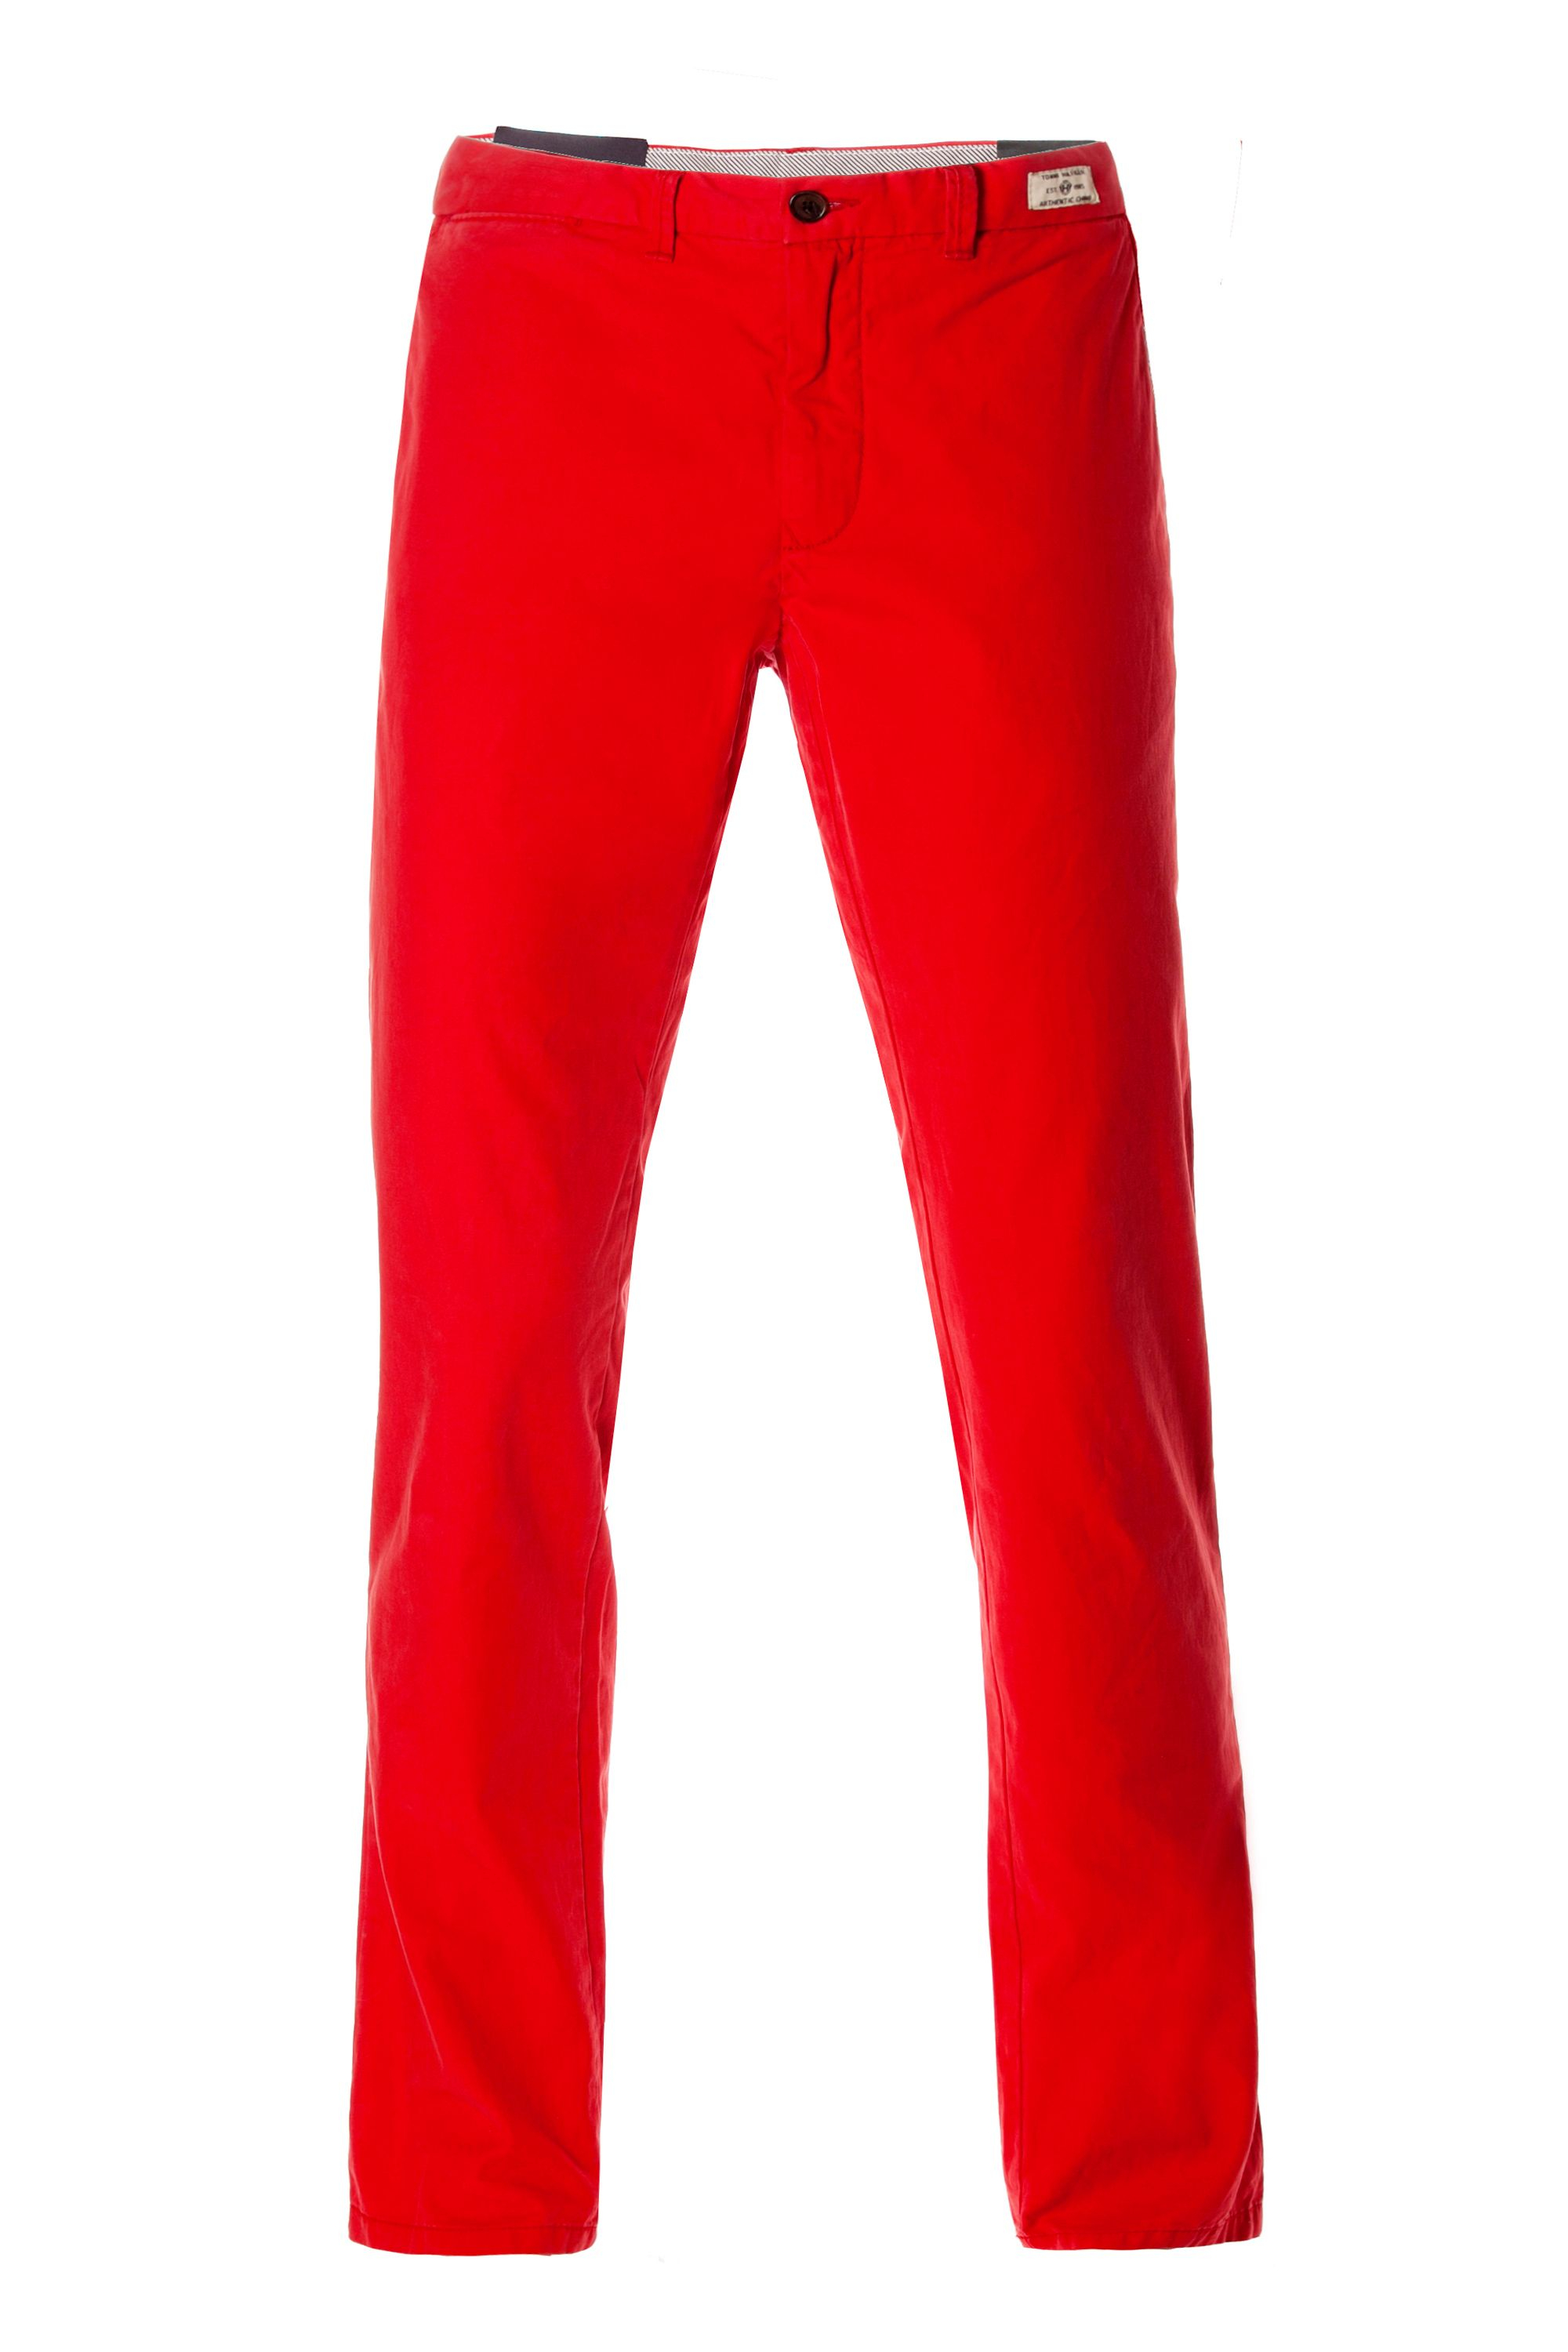 tommy hilfiger mercer chino boston twill in red for men lyst. Black Bedroom Furniture Sets. Home Design Ideas